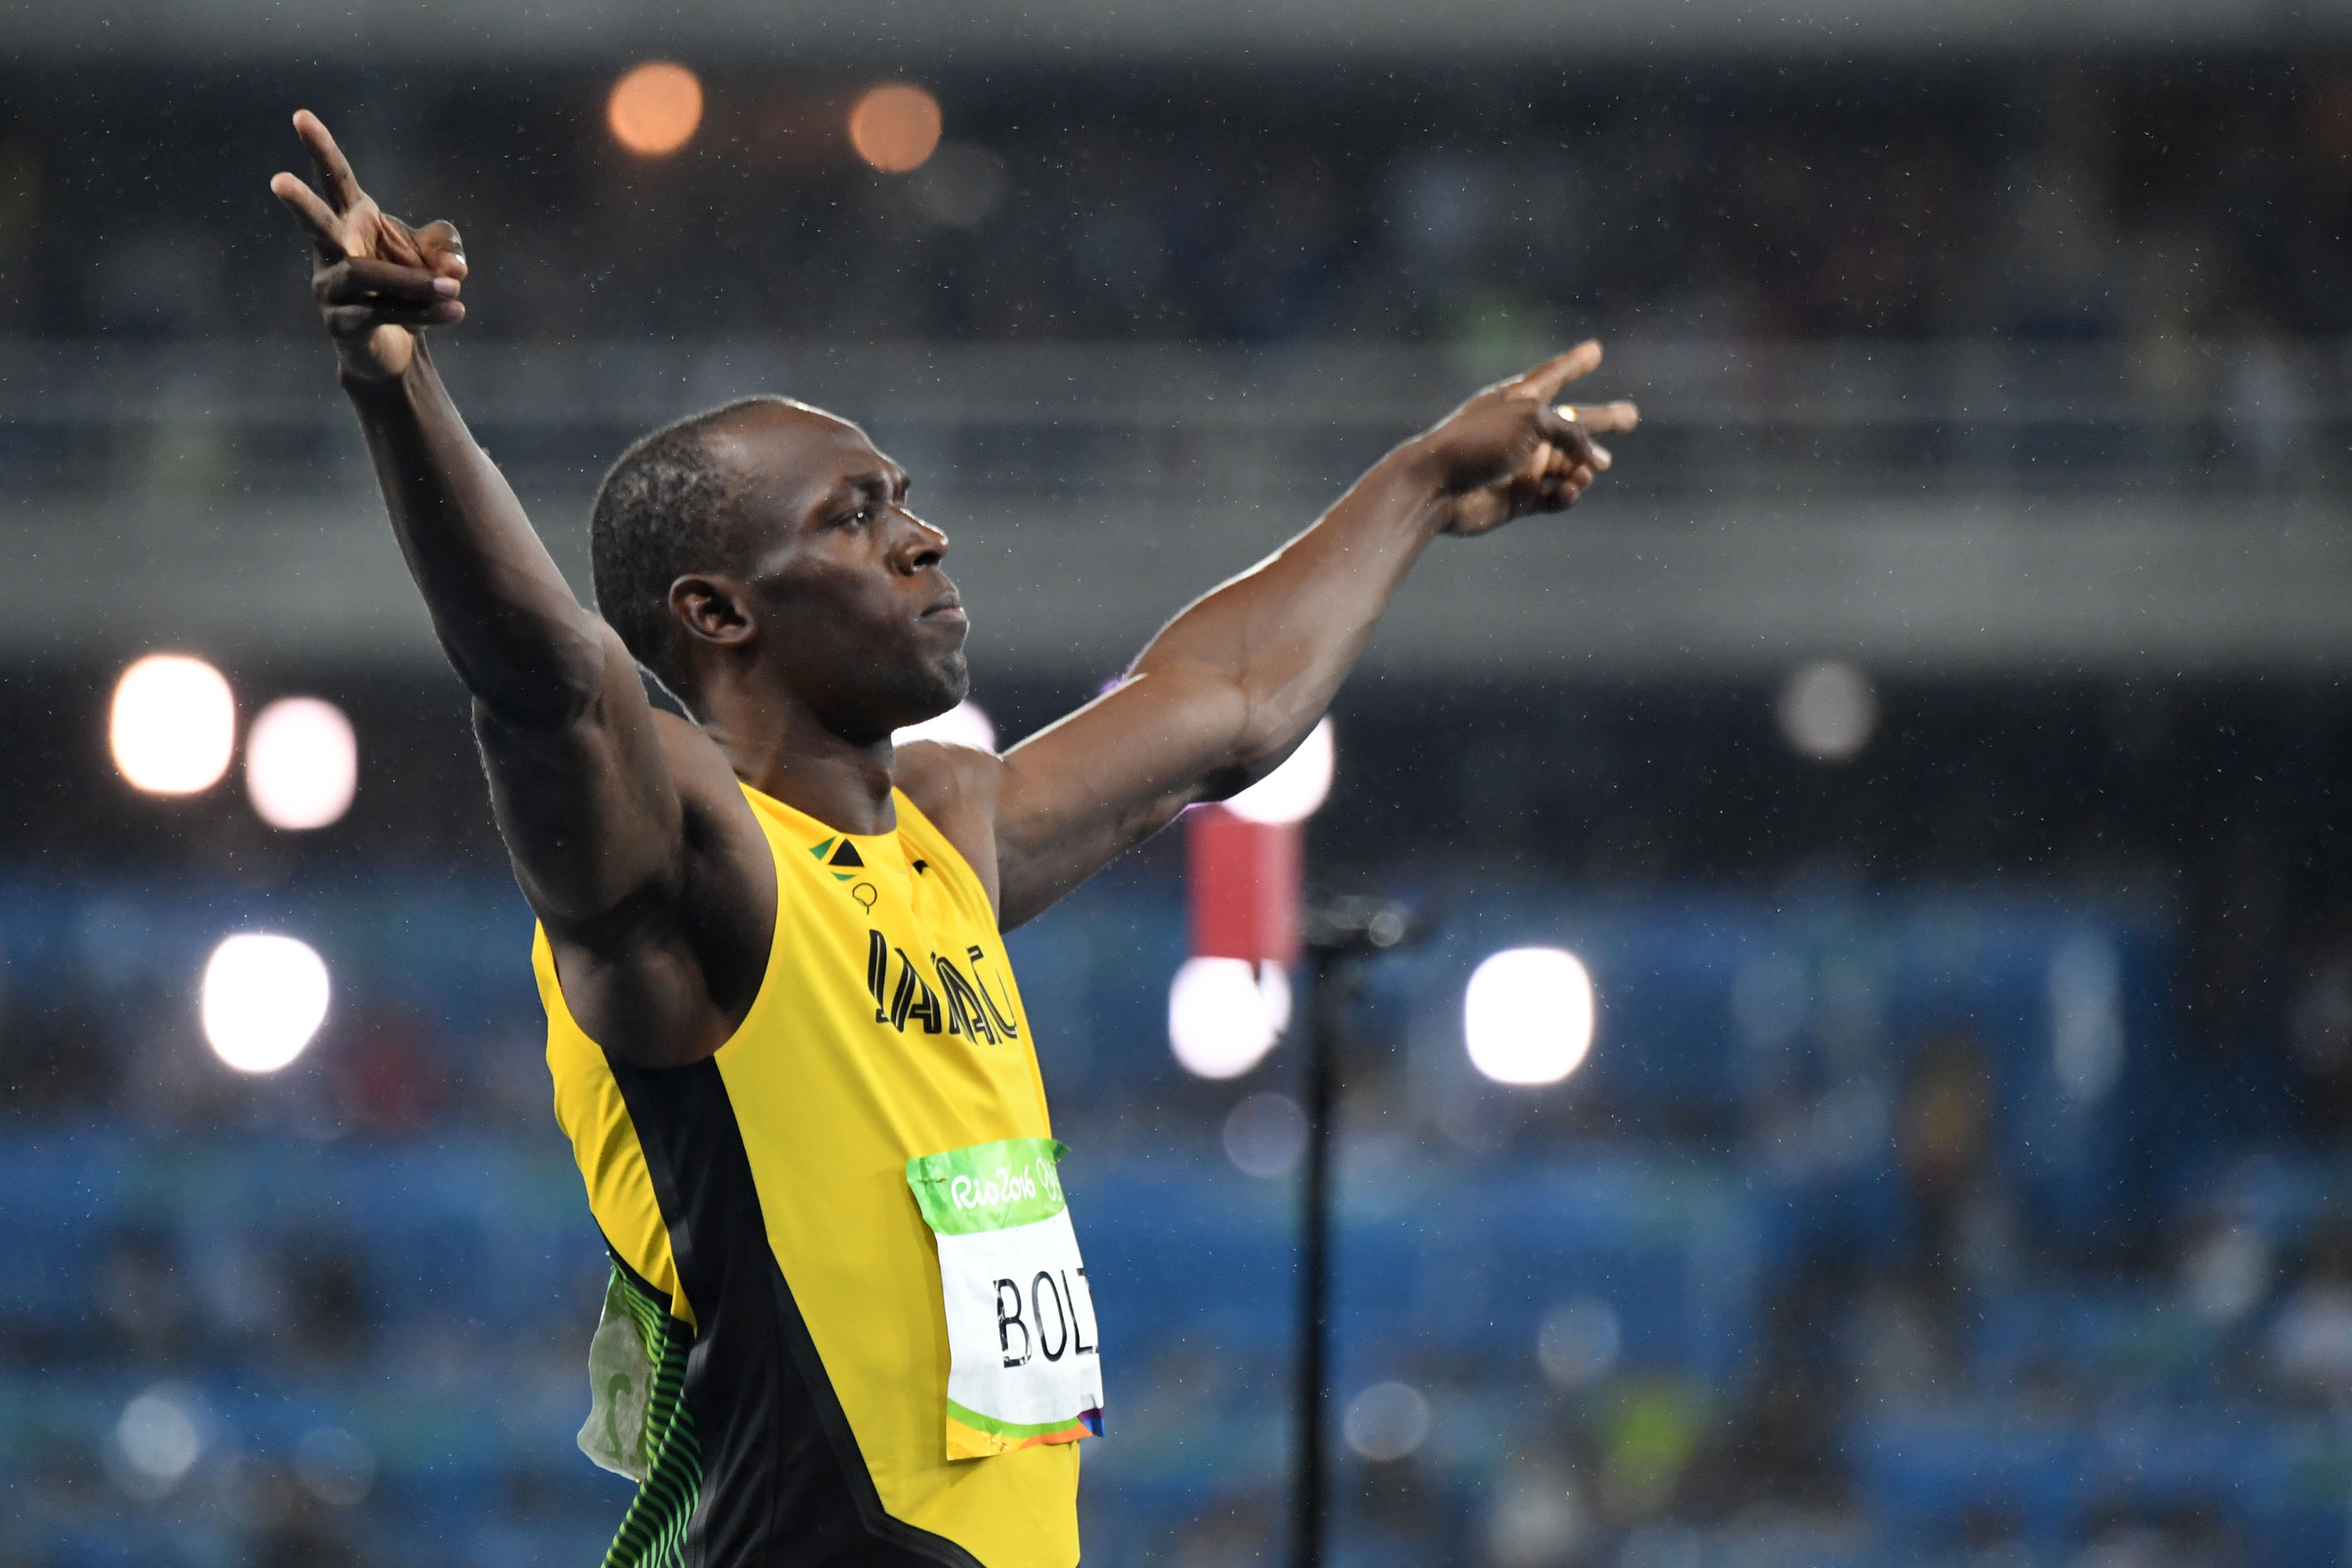 Jamaica's Usain Bolt celebrates after he won the Men's 200m Final during the athletics event at the Rio 2016 Olympic Games at the Olympic Stadium in Rio de Janeiro on Aug. 18, 2016.